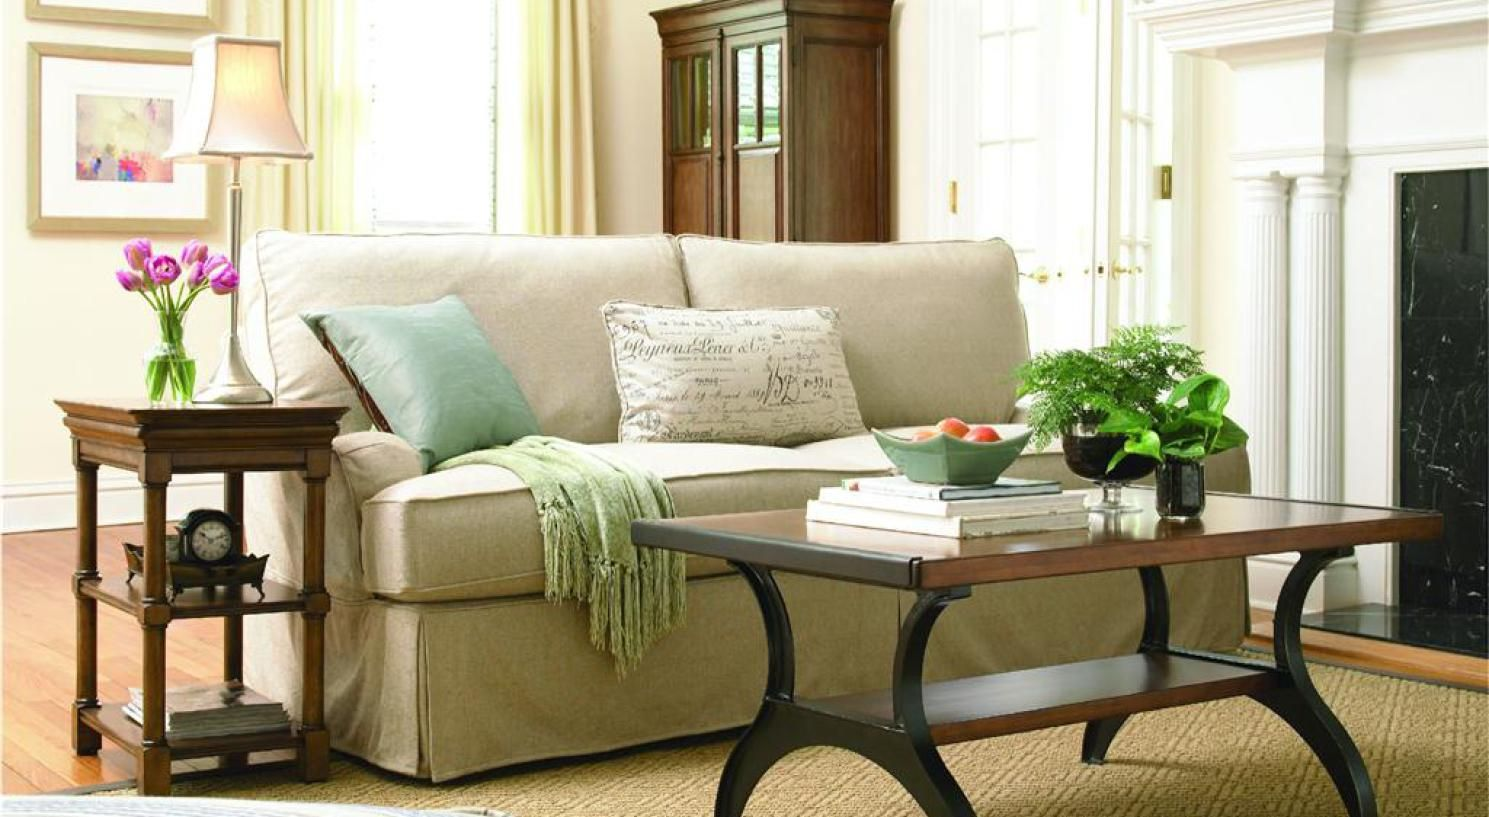 Discount furniture myrtle beach sc contemporary modern furniture check more at http